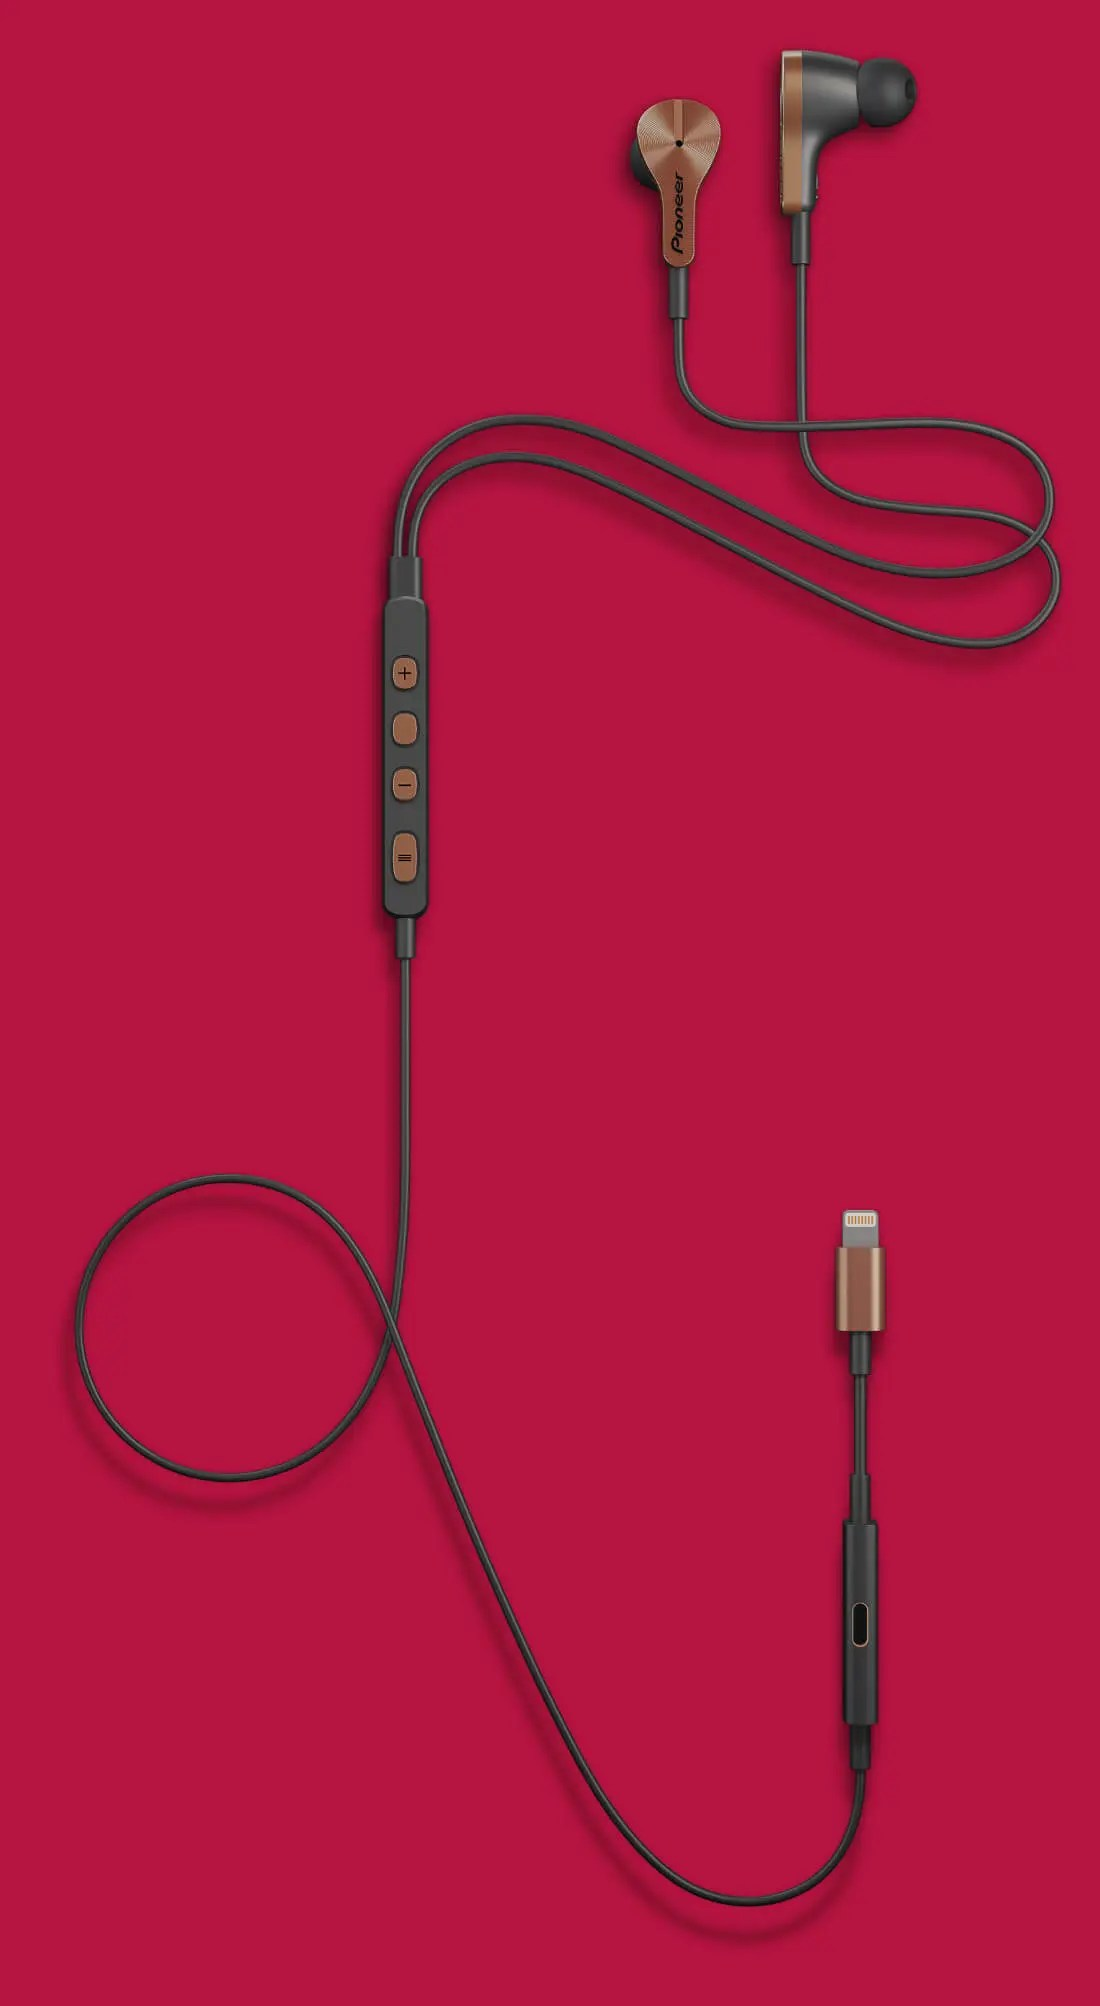 rayz-plus-earphones_hero_redbg_shadow